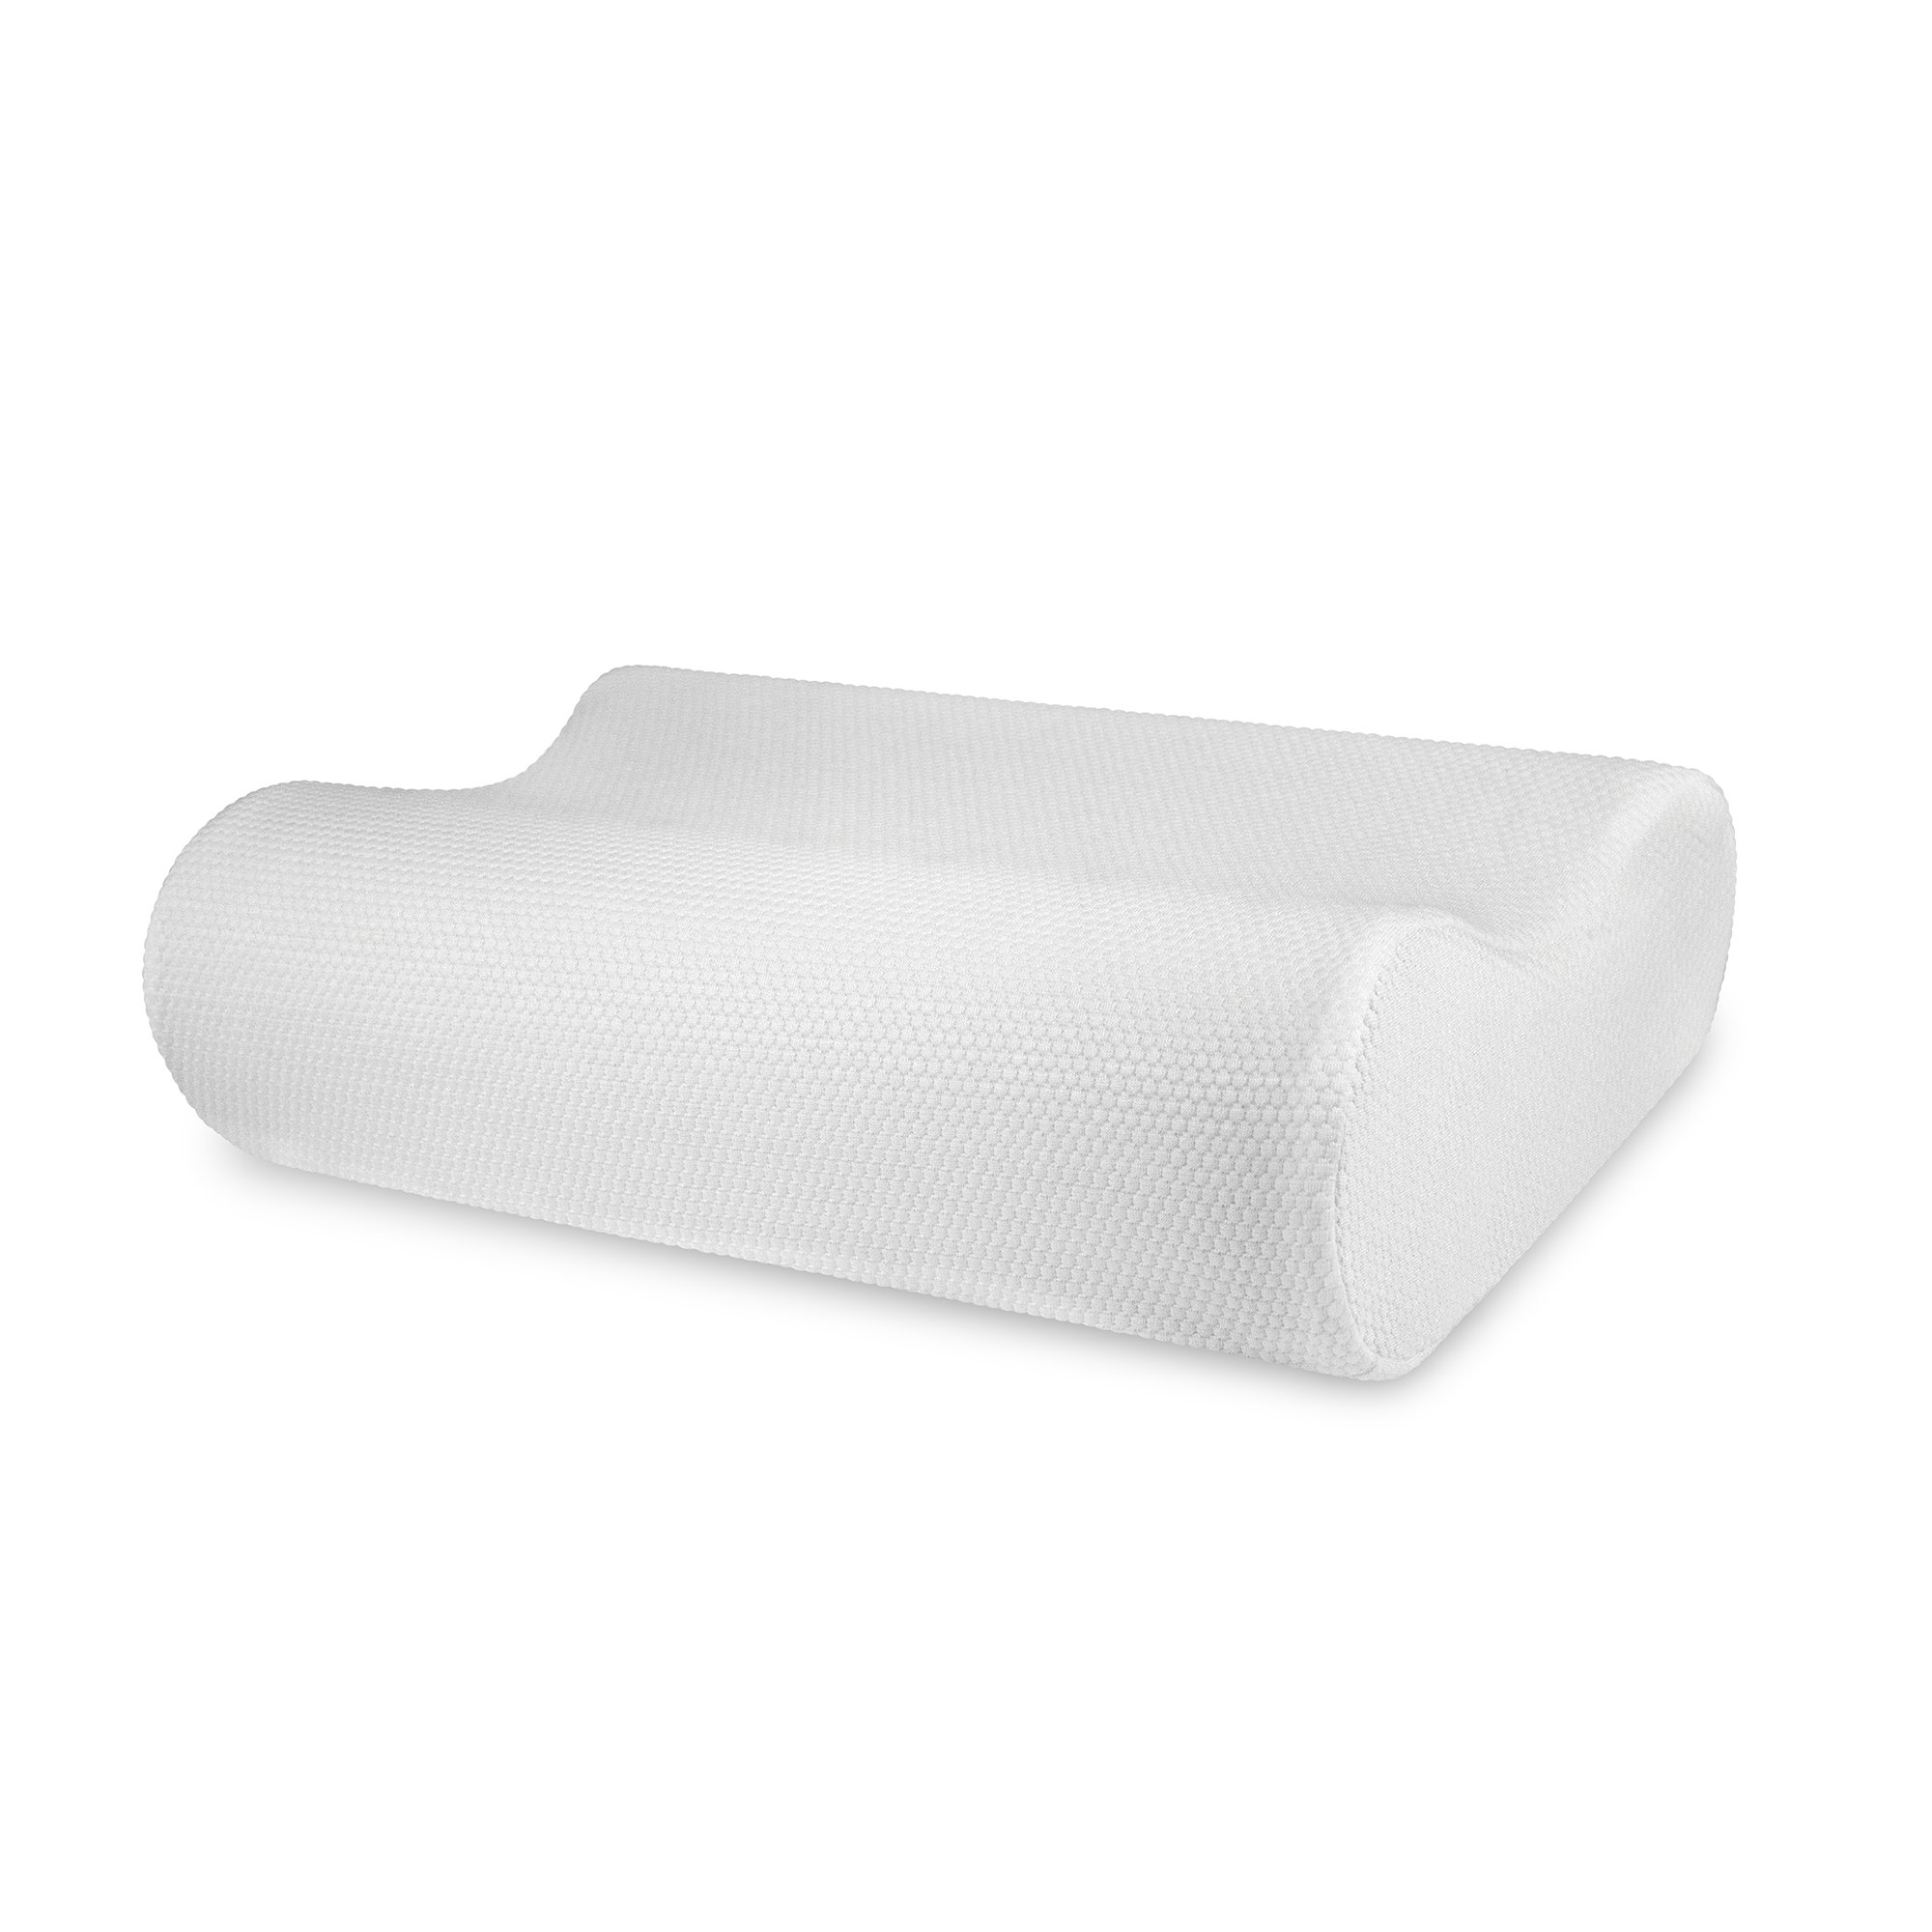 SensorPEDIC Classic Contour Memory Foam Neck Pillow with Ventilated iCOOL Technology Standard, White